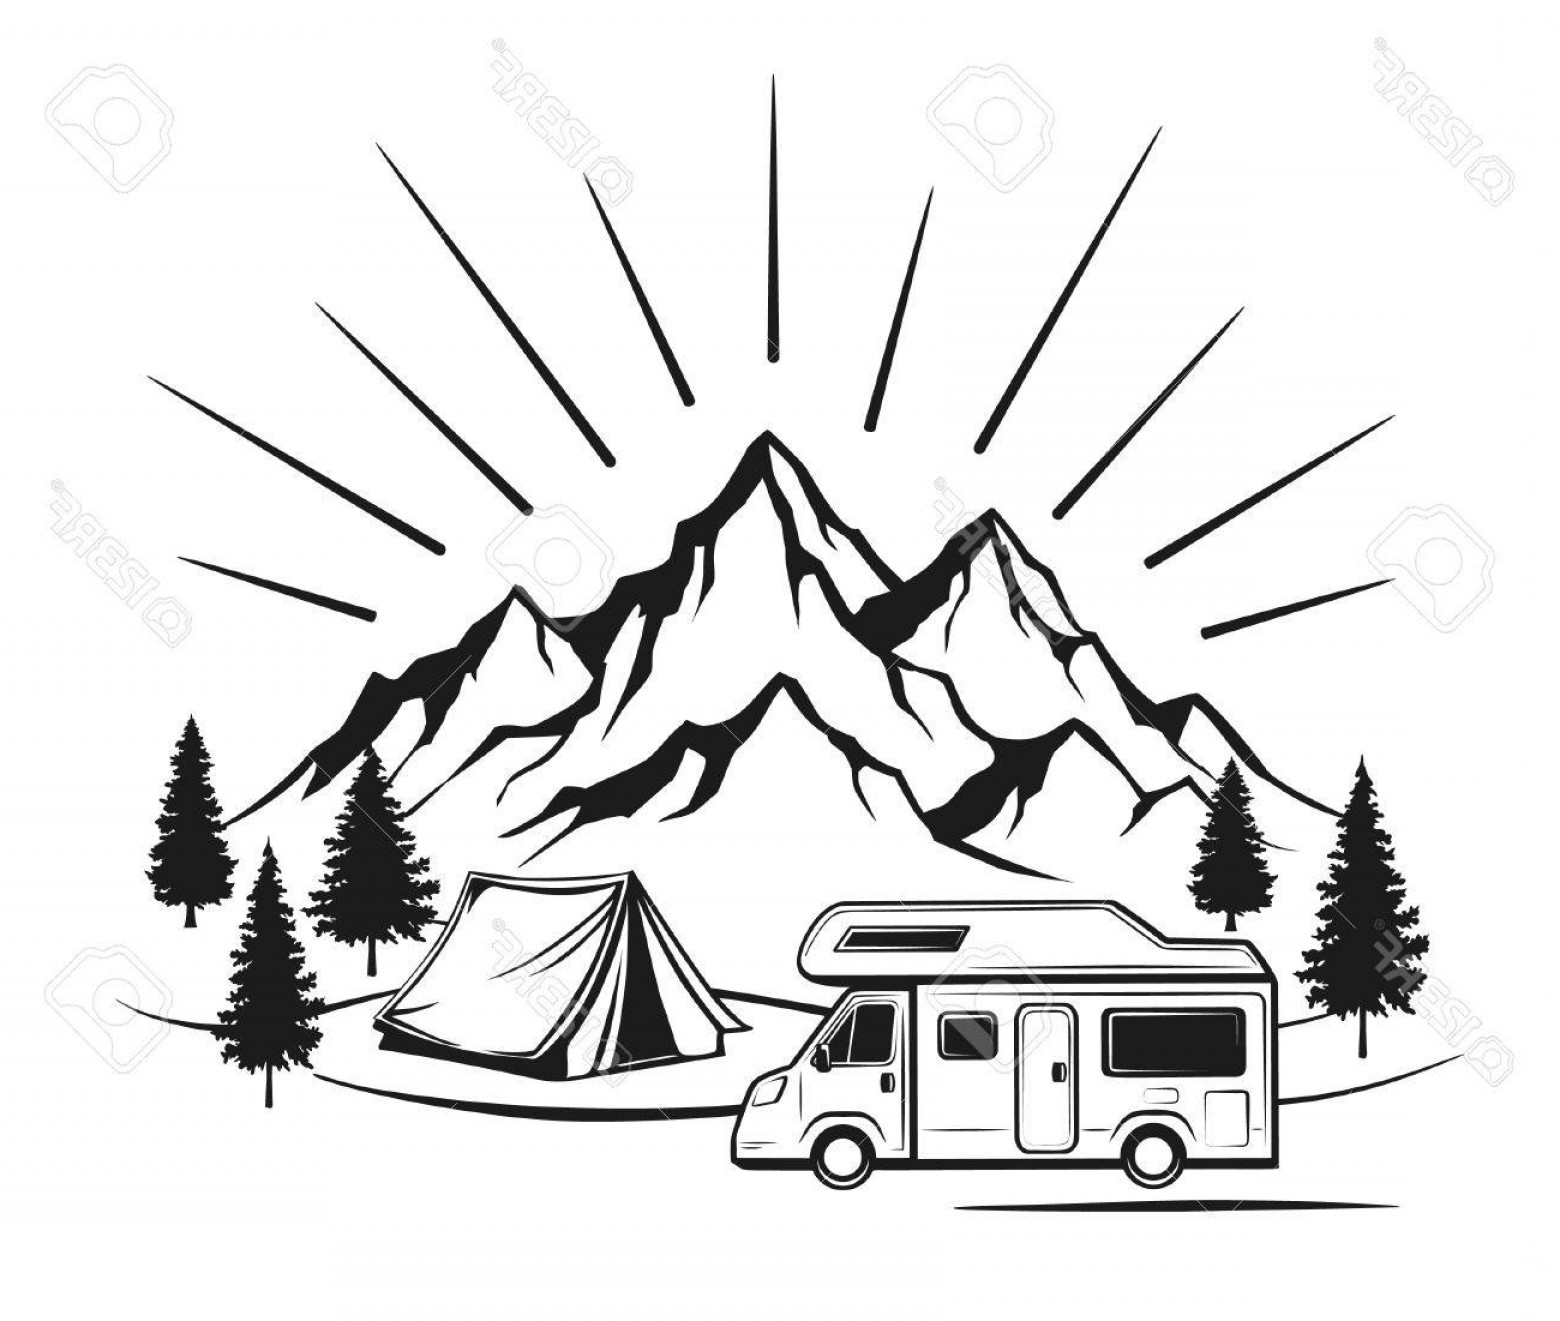 Rocky Mountain Line Art Vector: Photostock Vector Campsite With Camper Caravan Tent Rocky Mountains Pine Forest Family Vacation Outdoor Scene